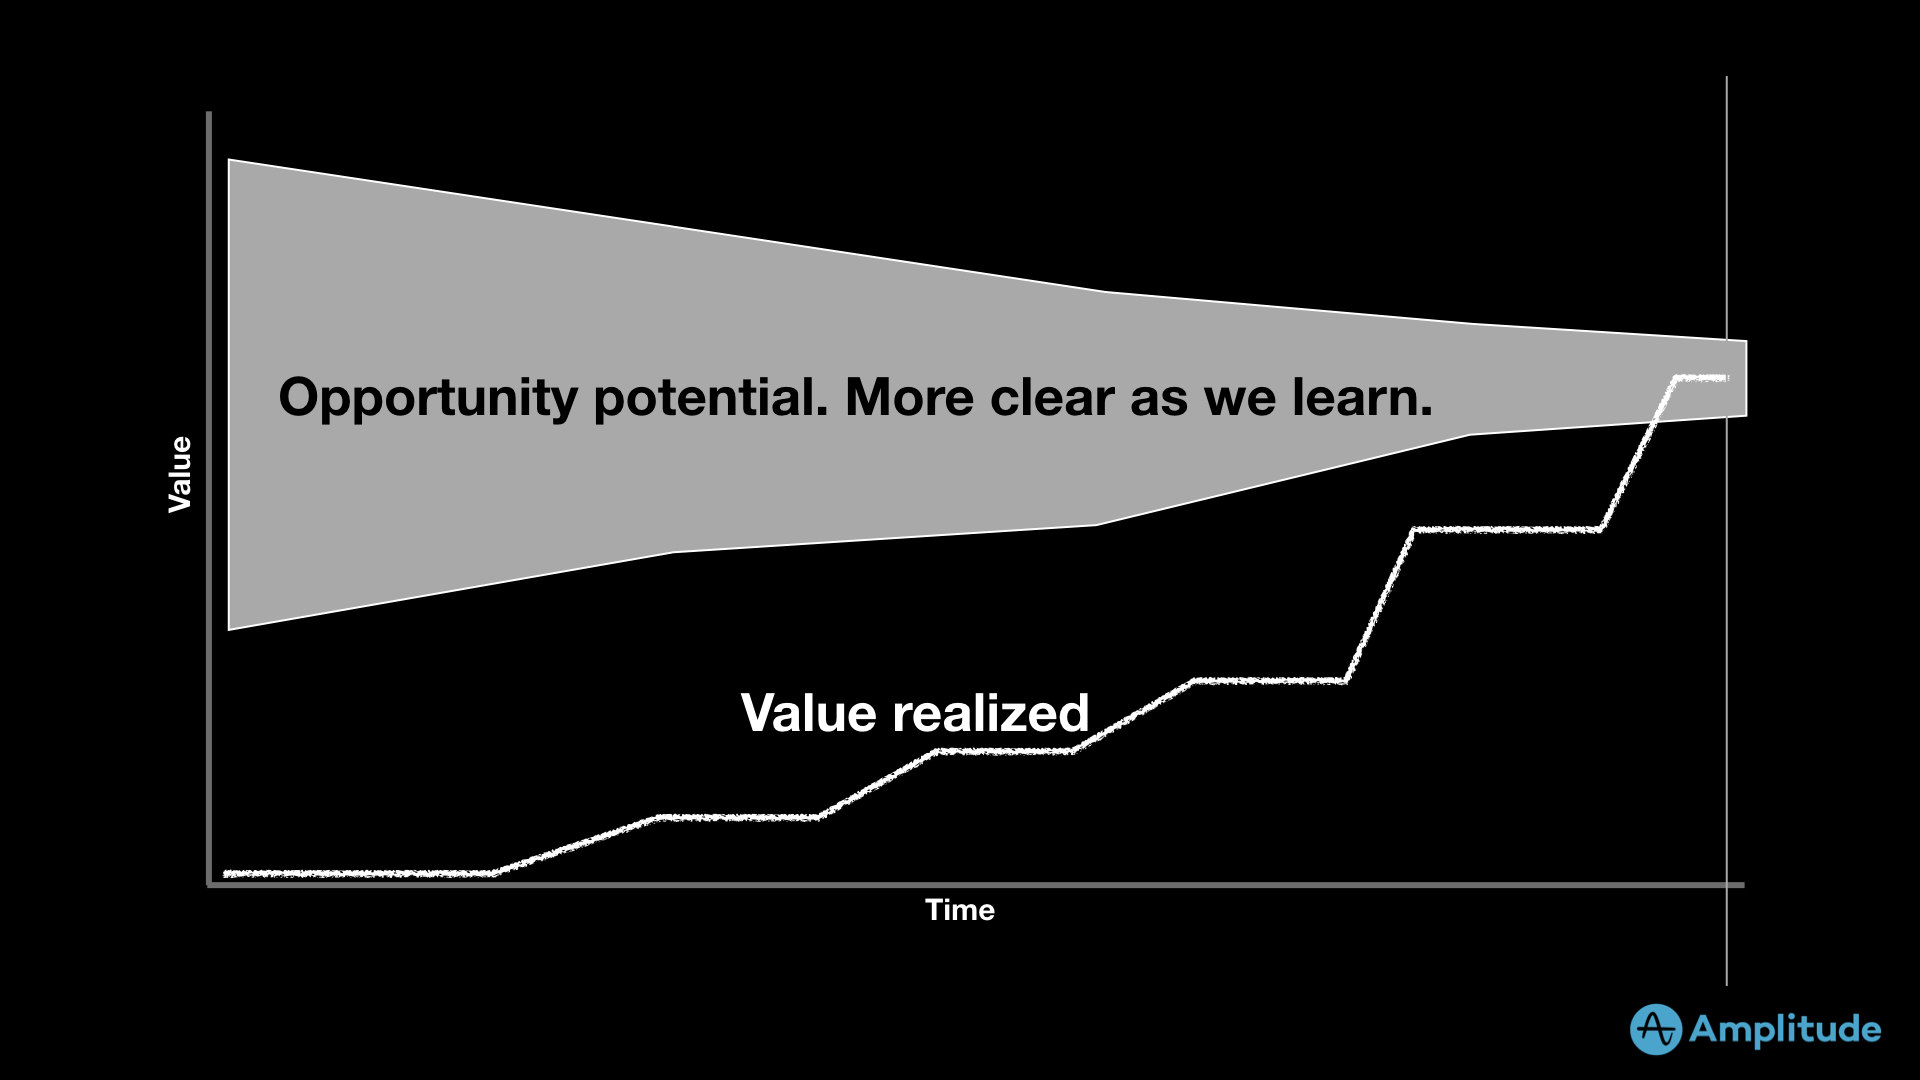 realize-value-as-we-learn